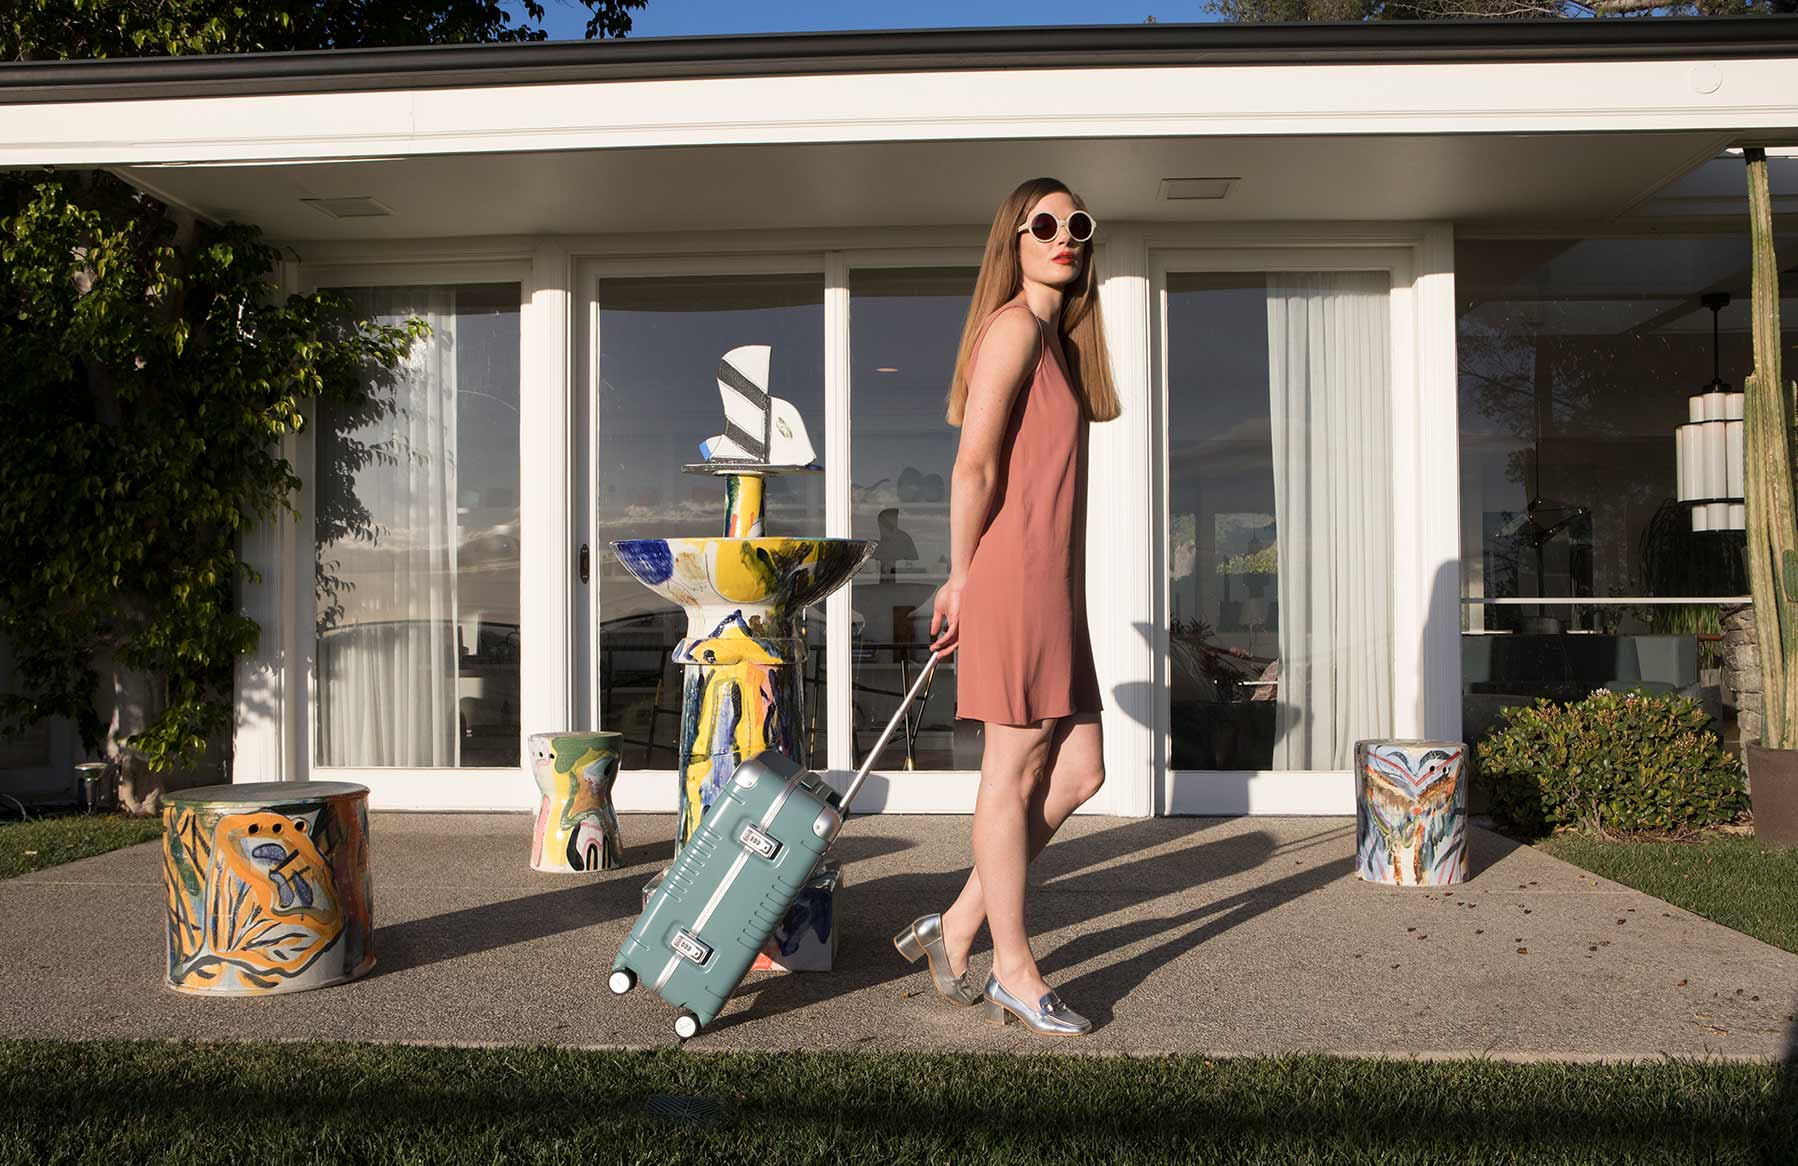 Arlo Skye Luggage Smart Suitcase Collaboration With Sight Unseen at Casa Perfect by Future Perfect